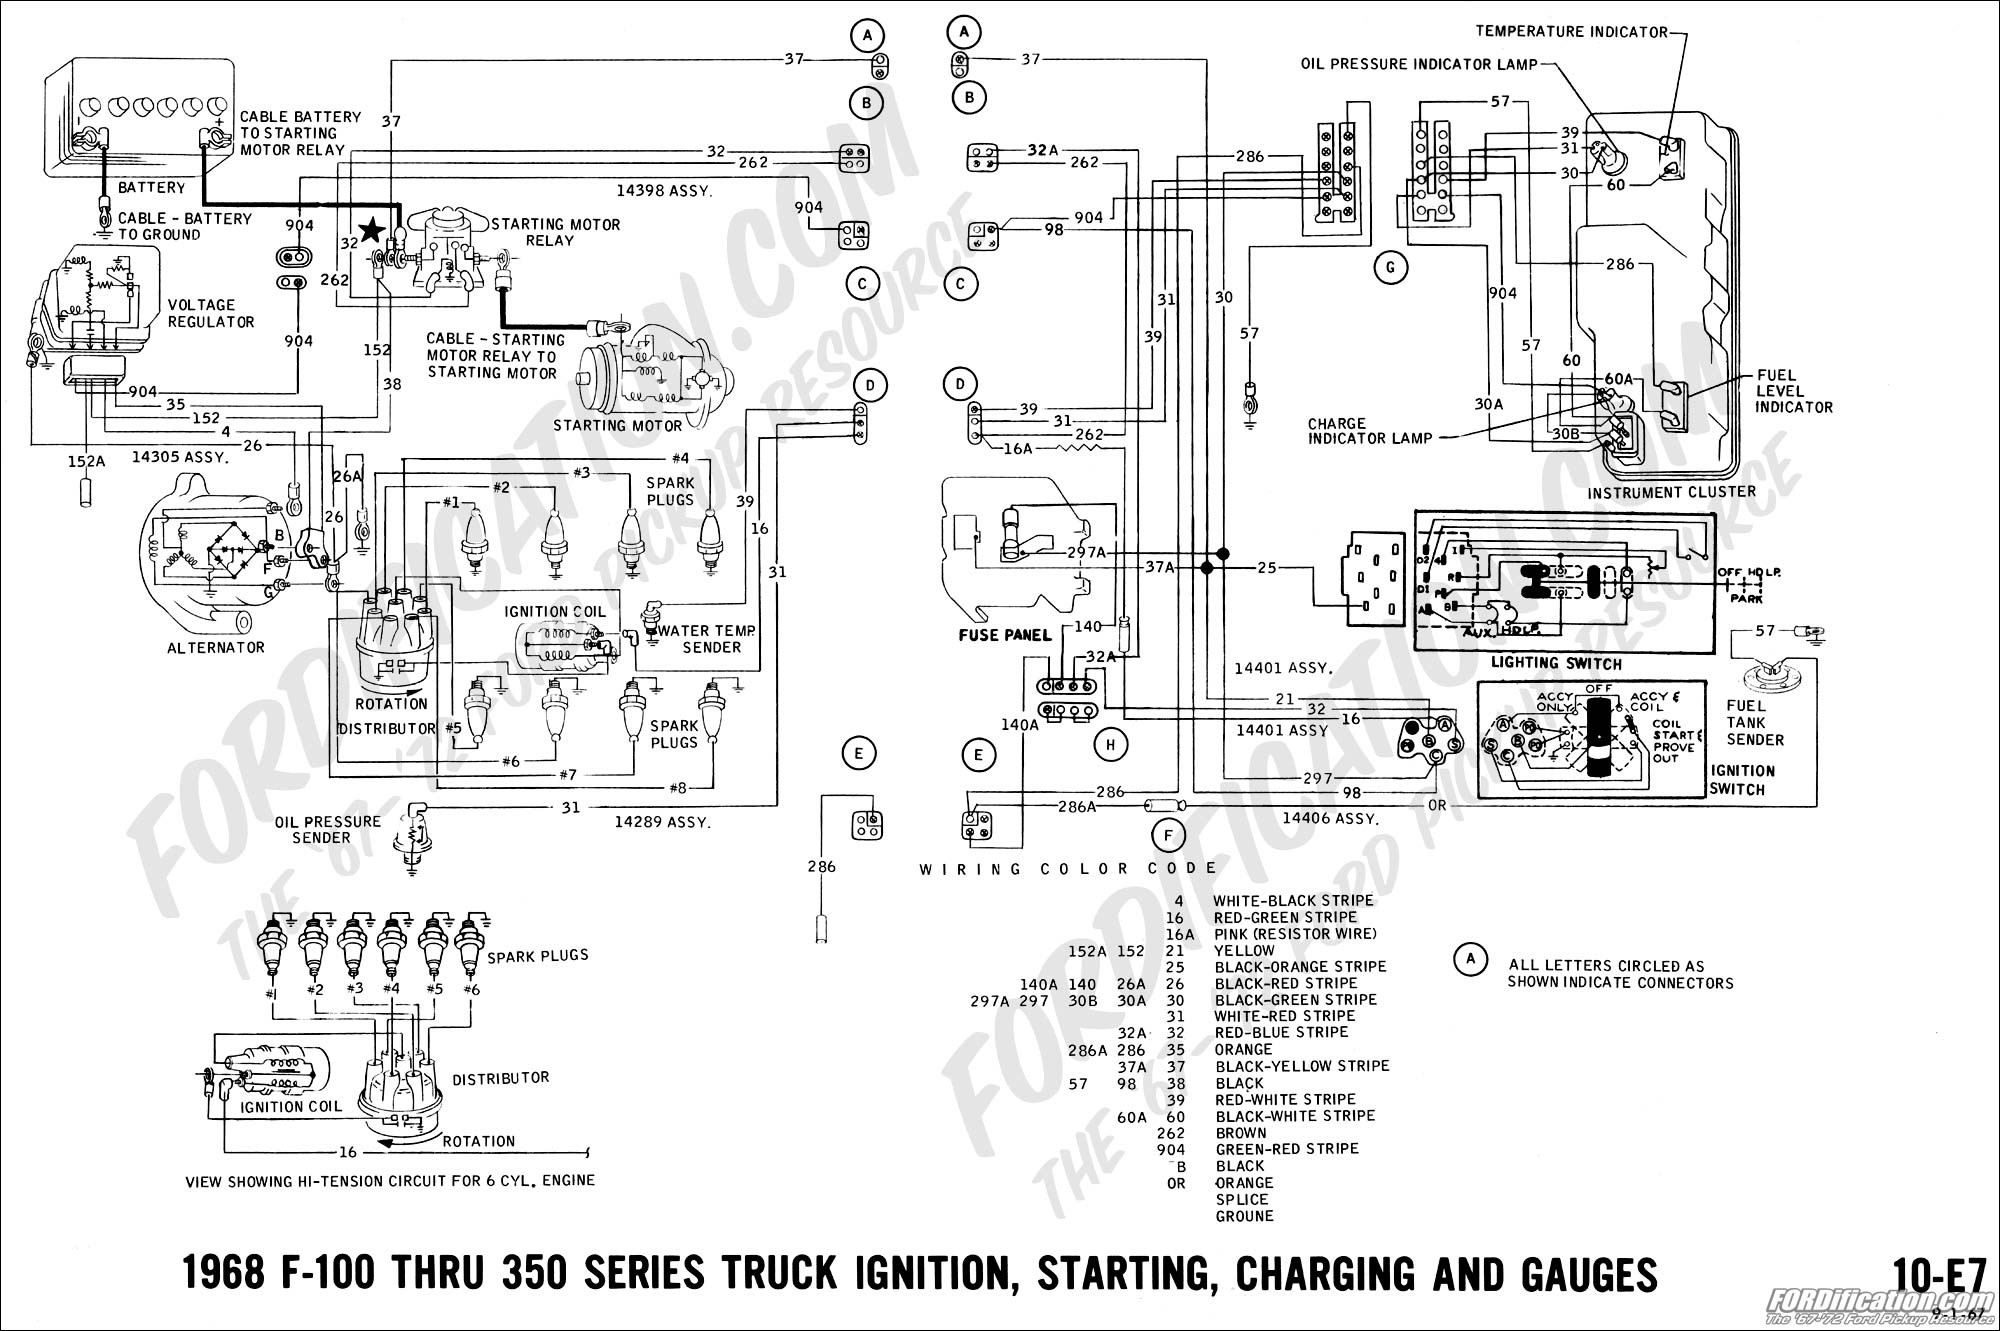 2001 Ford Ranger Wiper Motor Wiring Diagram Library 1995 And Schematic Taurus Engine Mustang Also Meke Of